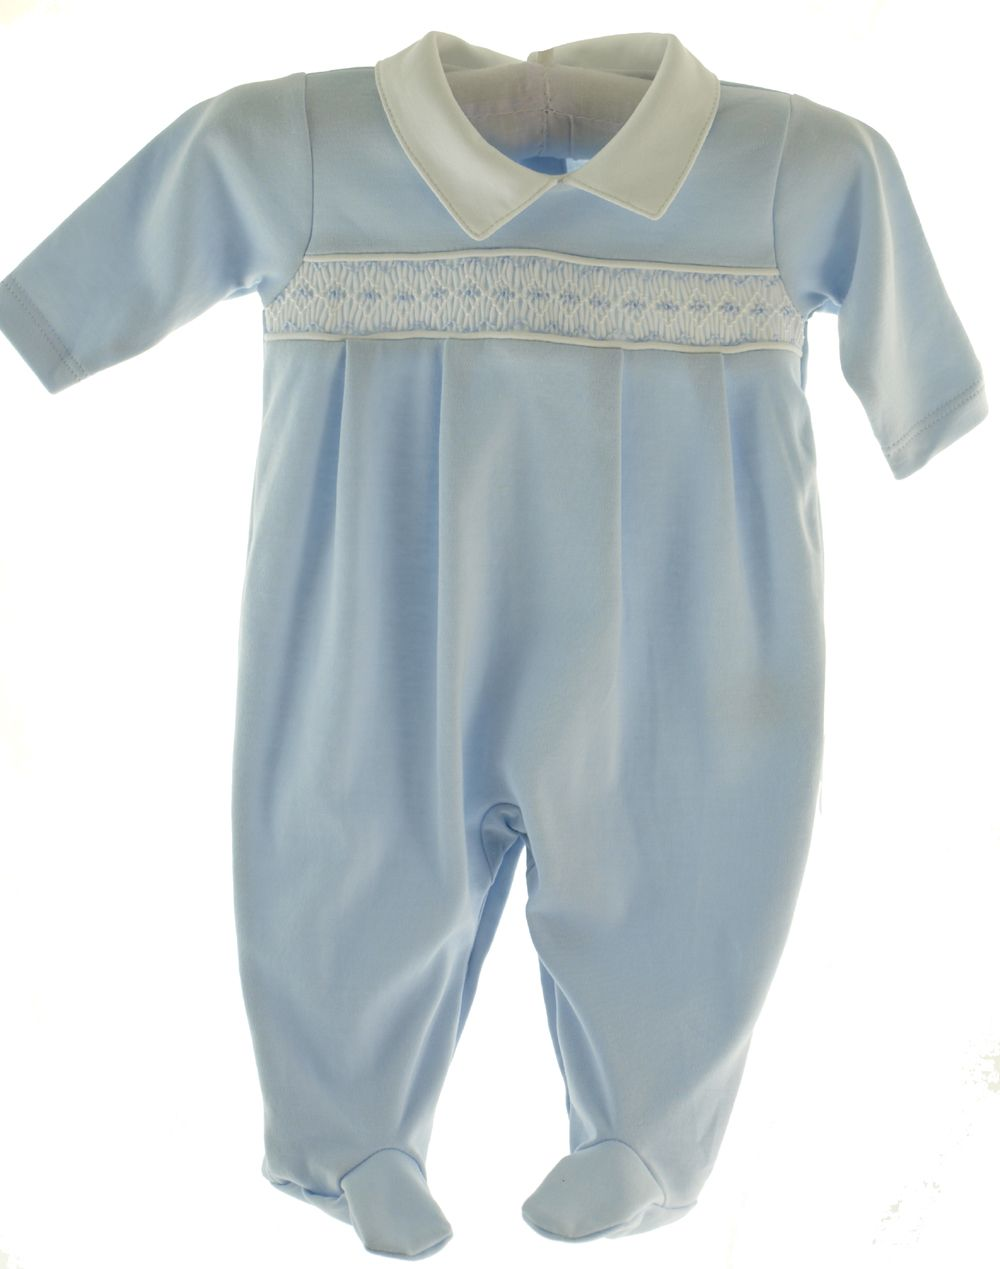 Kissy Kissy Baby Boys Blue Footed Footie Sleeper Outfit With Collar